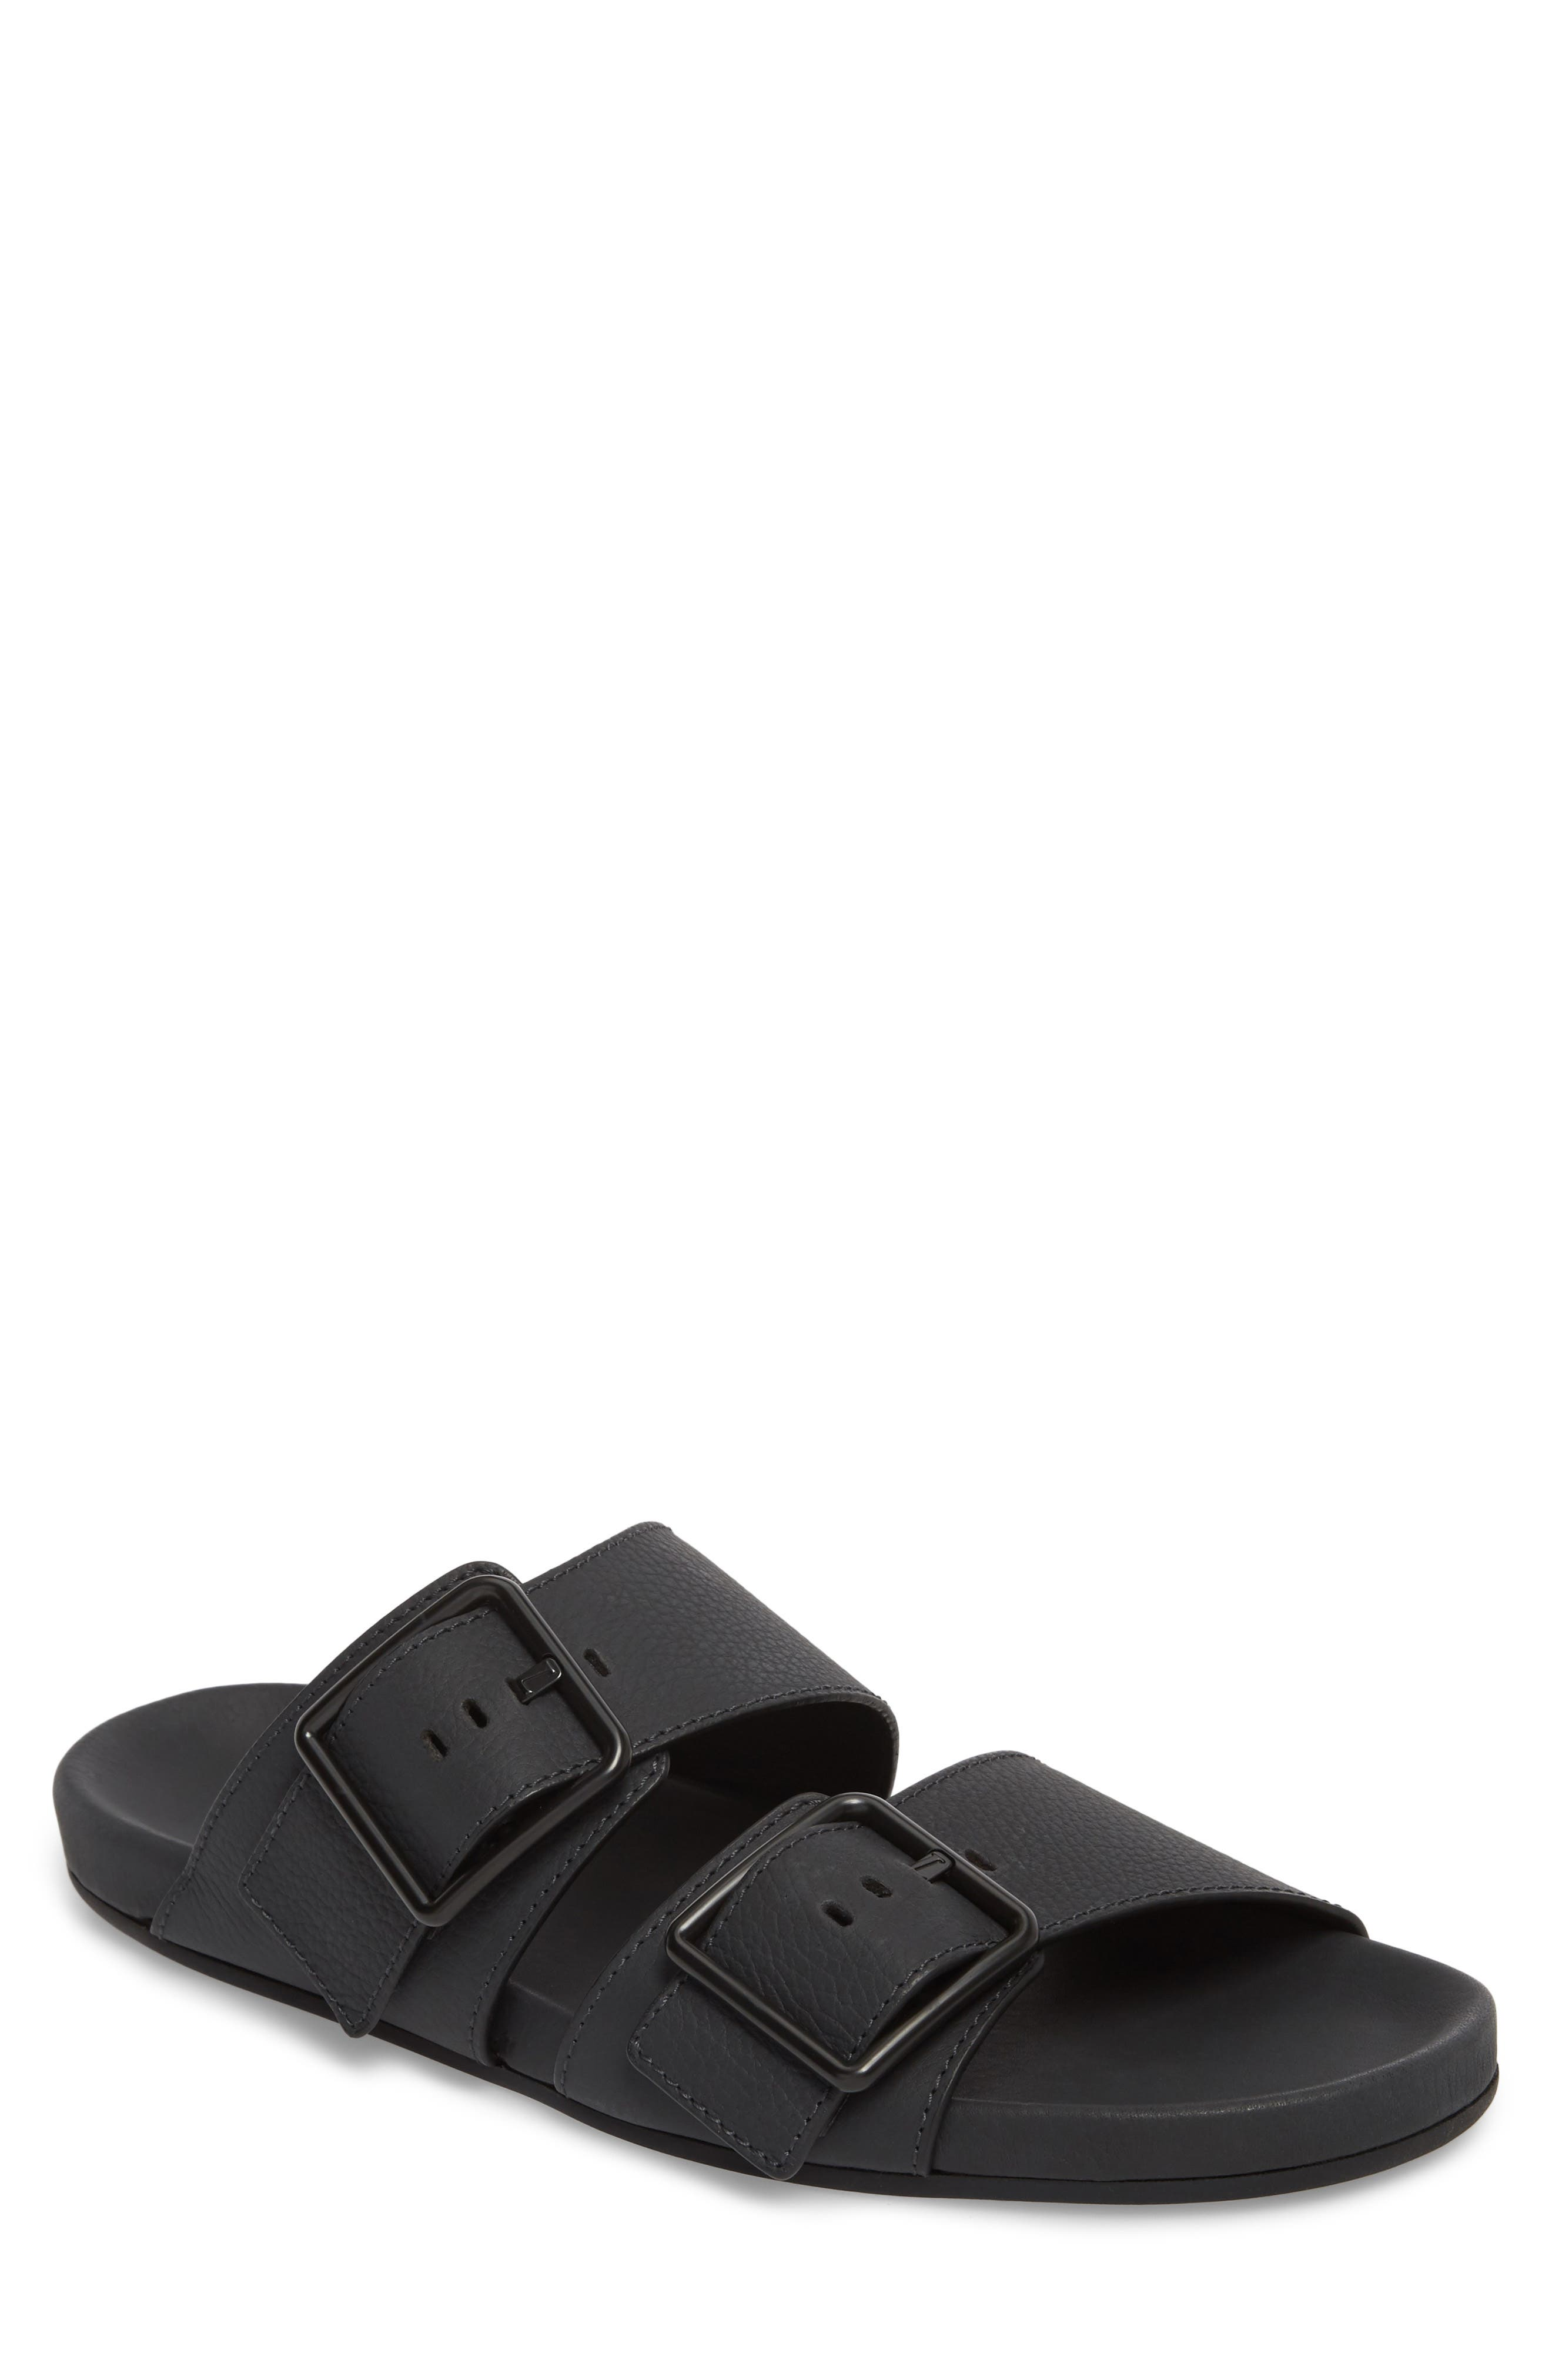 Double Strap Slide Sandal,                             Main thumbnail 1, color,                             001